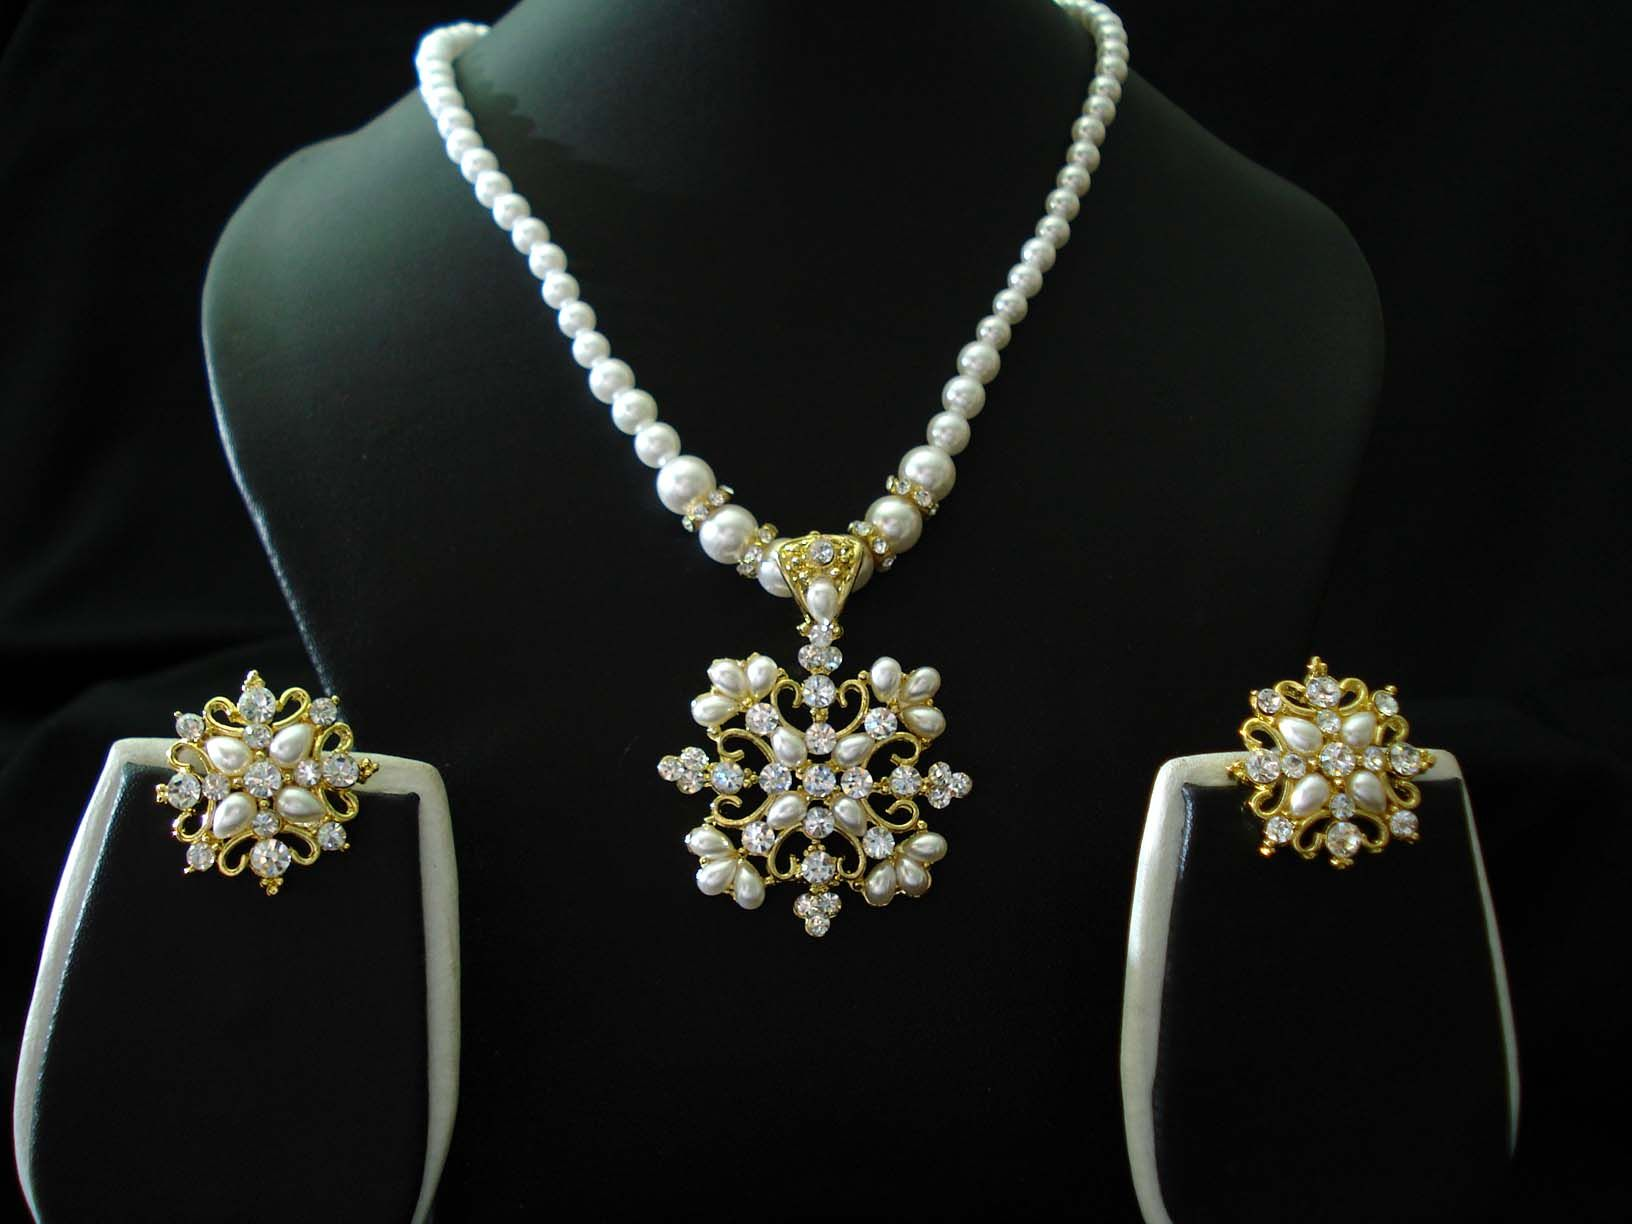 Necklace Design Ideas on Pearls Jewelry Designs Pearls Jewelry ...